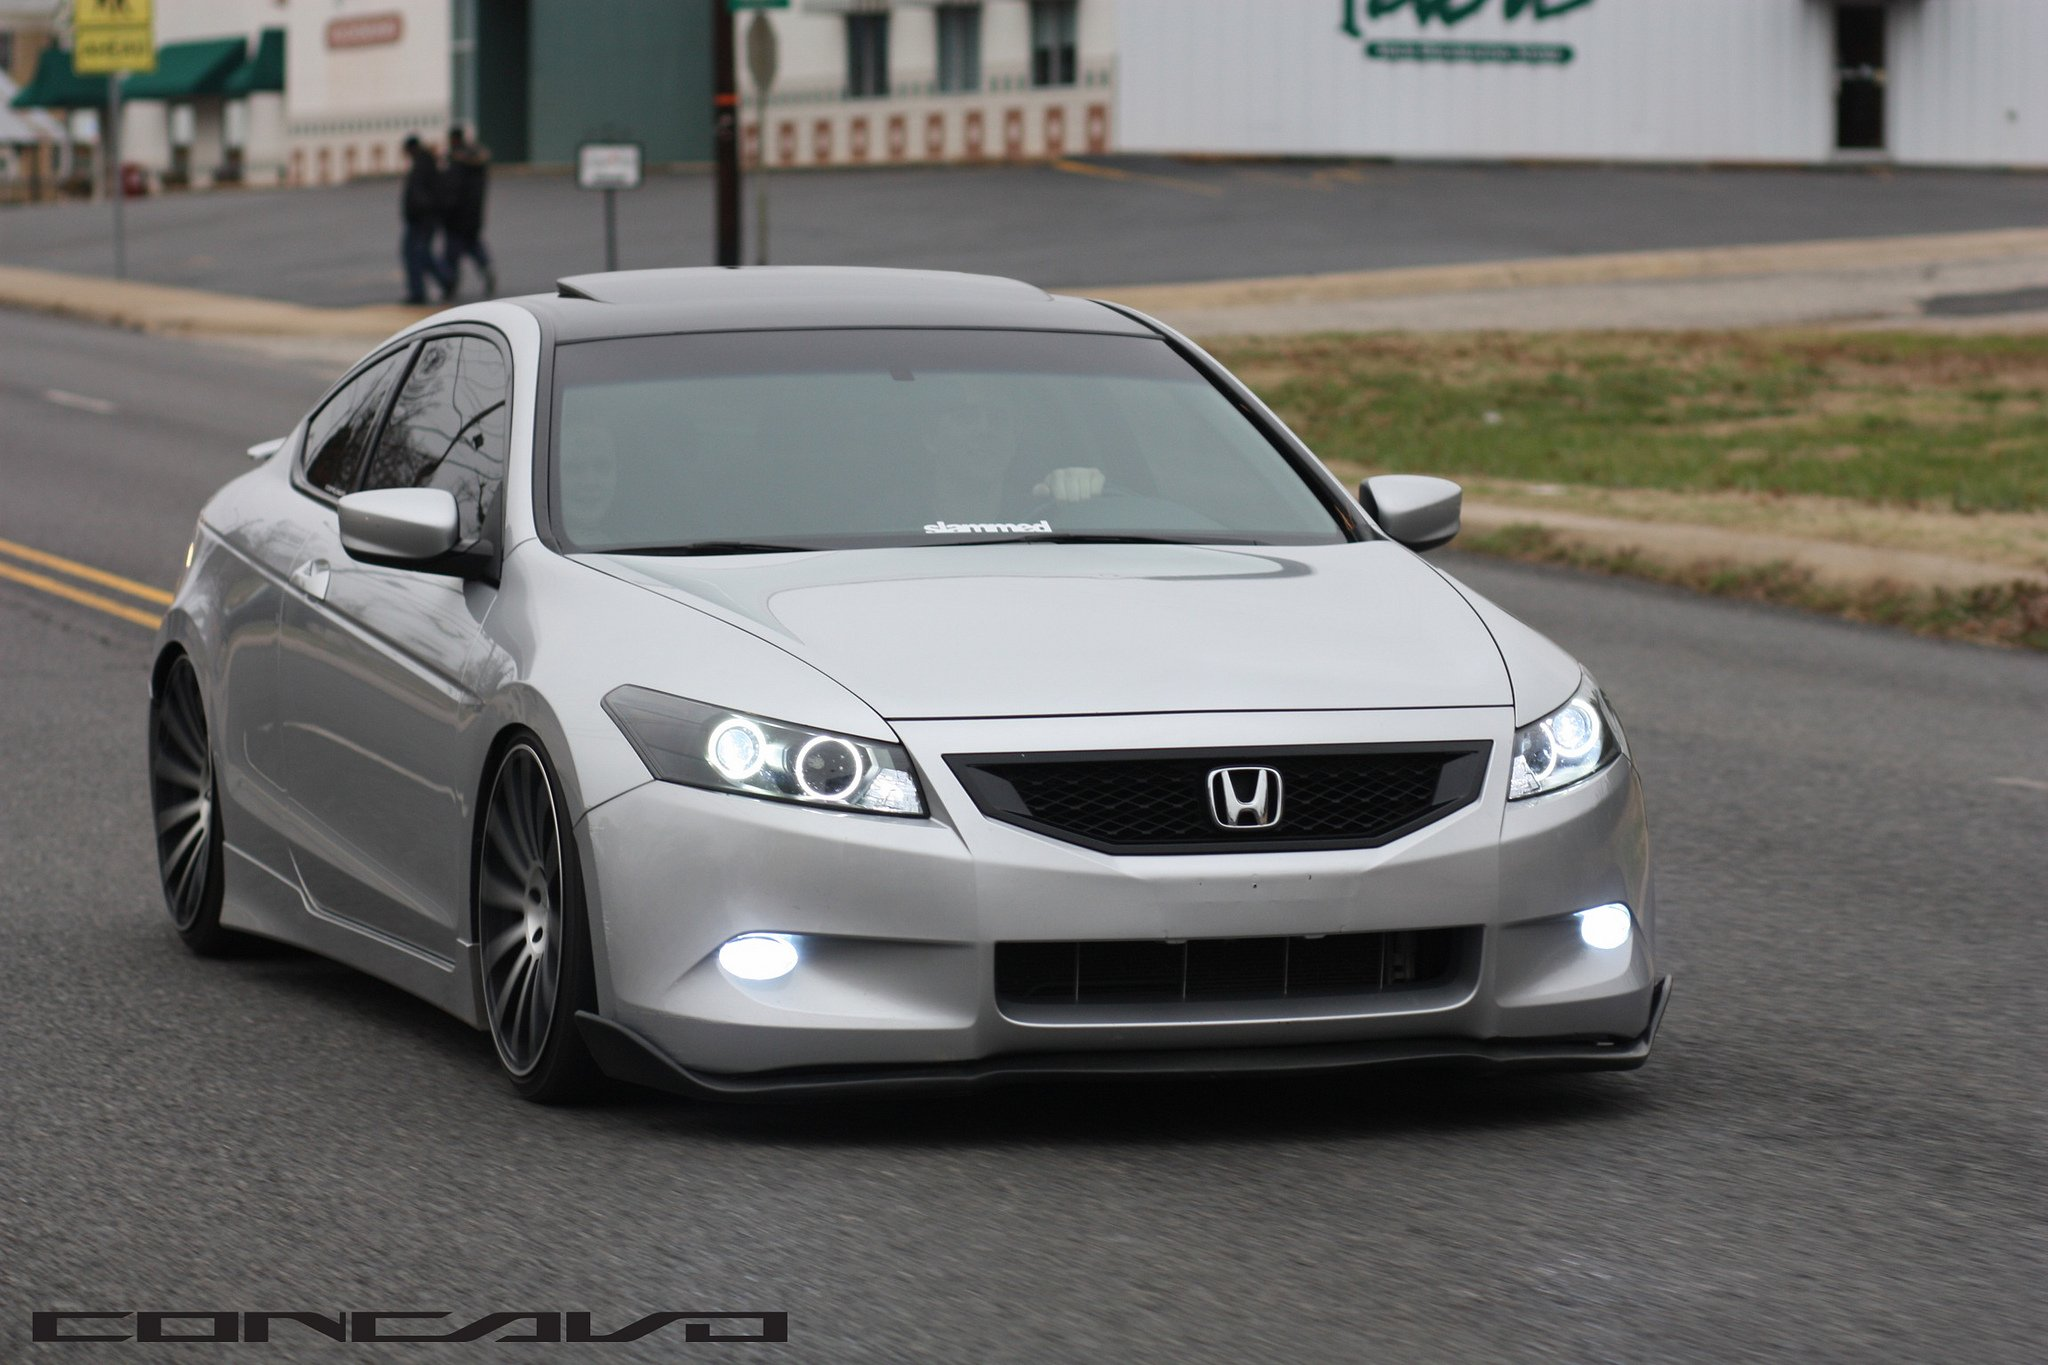 2013 honda accord coupe body kits for sale autos post. Black Bedroom Furniture Sets. Home Design Ideas